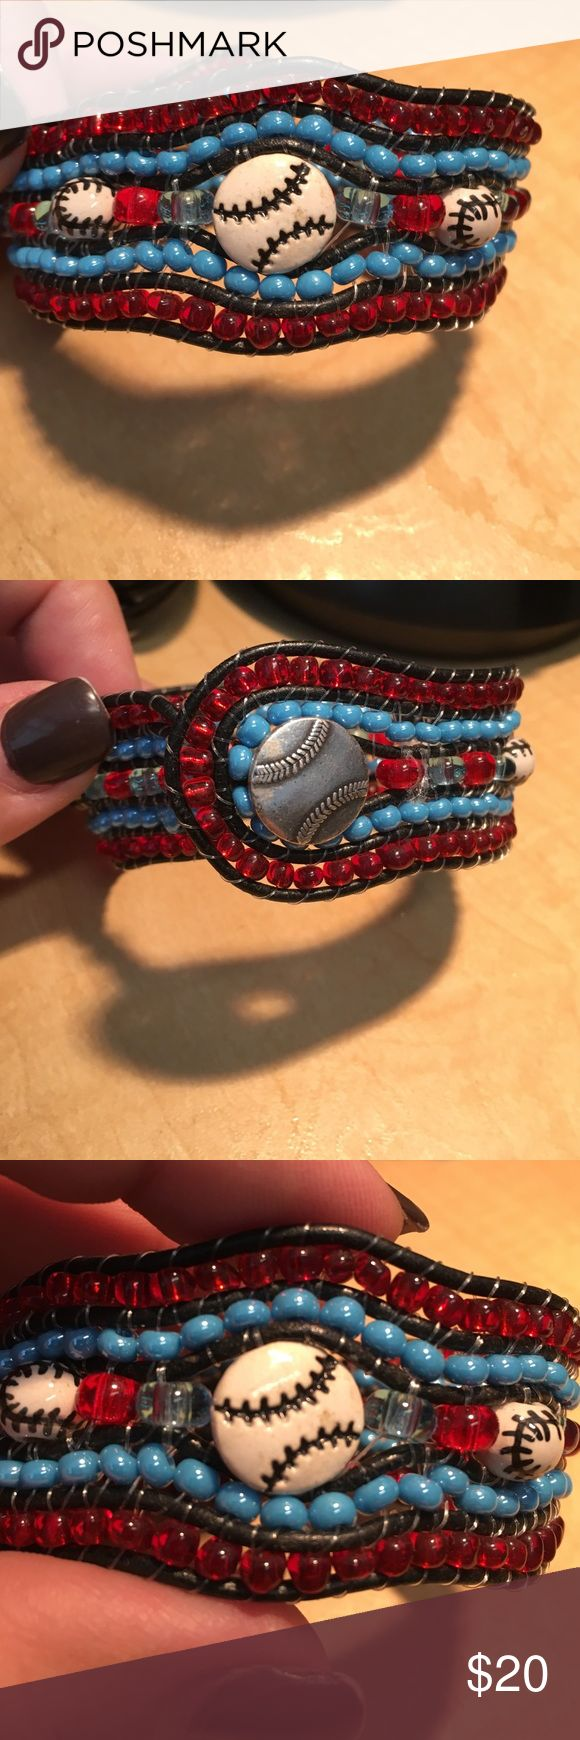 Women's baseball bracelet cuff Red and blue with baseball beads and button closure. Super cute! Jewelry Bracelets